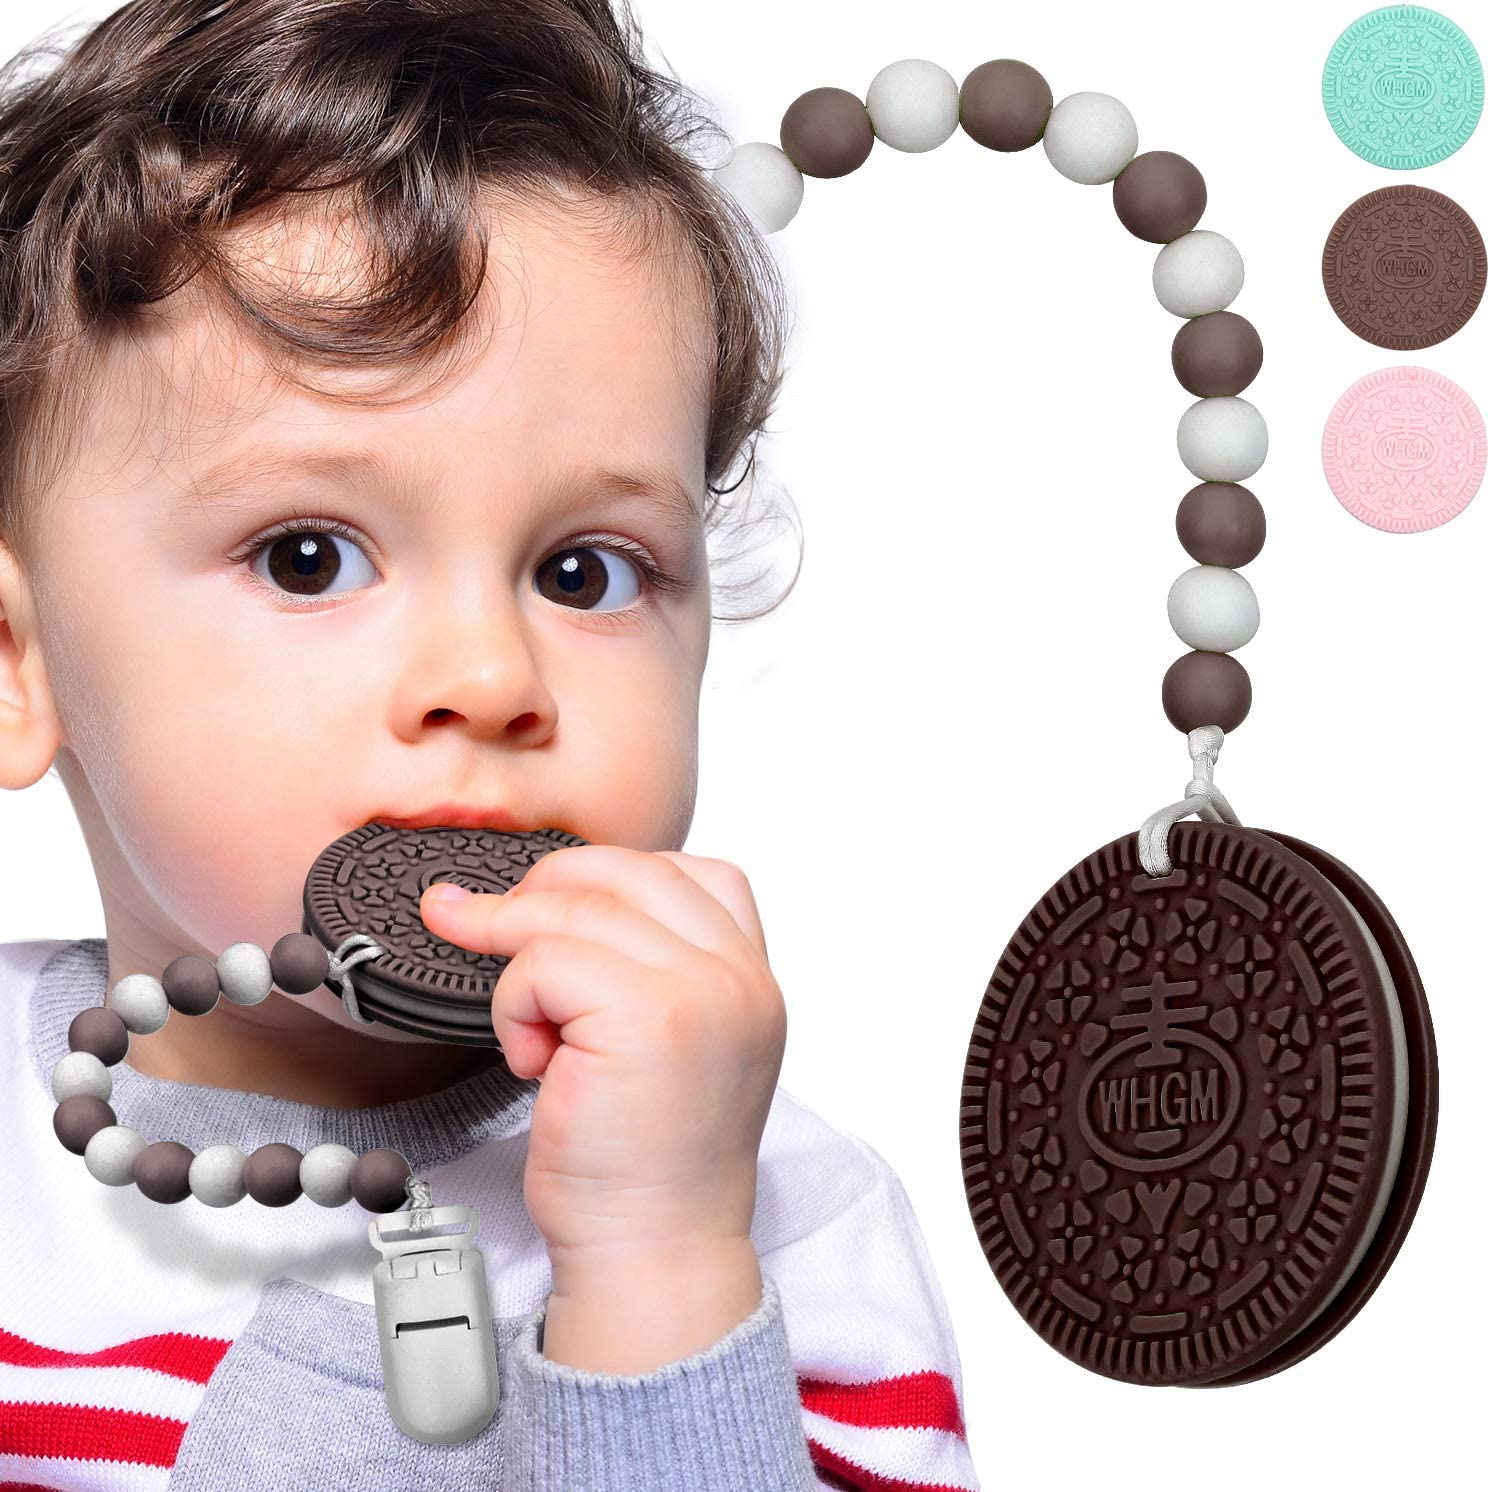 Baby Teether Teething Cookie Toys Silicone Teething Biscuit for with Teething Pacifier Clip Holder and Carry Box, Food-Grade Silicone BPA-Free Infant Toy for 0-24 Months Baby Boys & Girl (Brown)